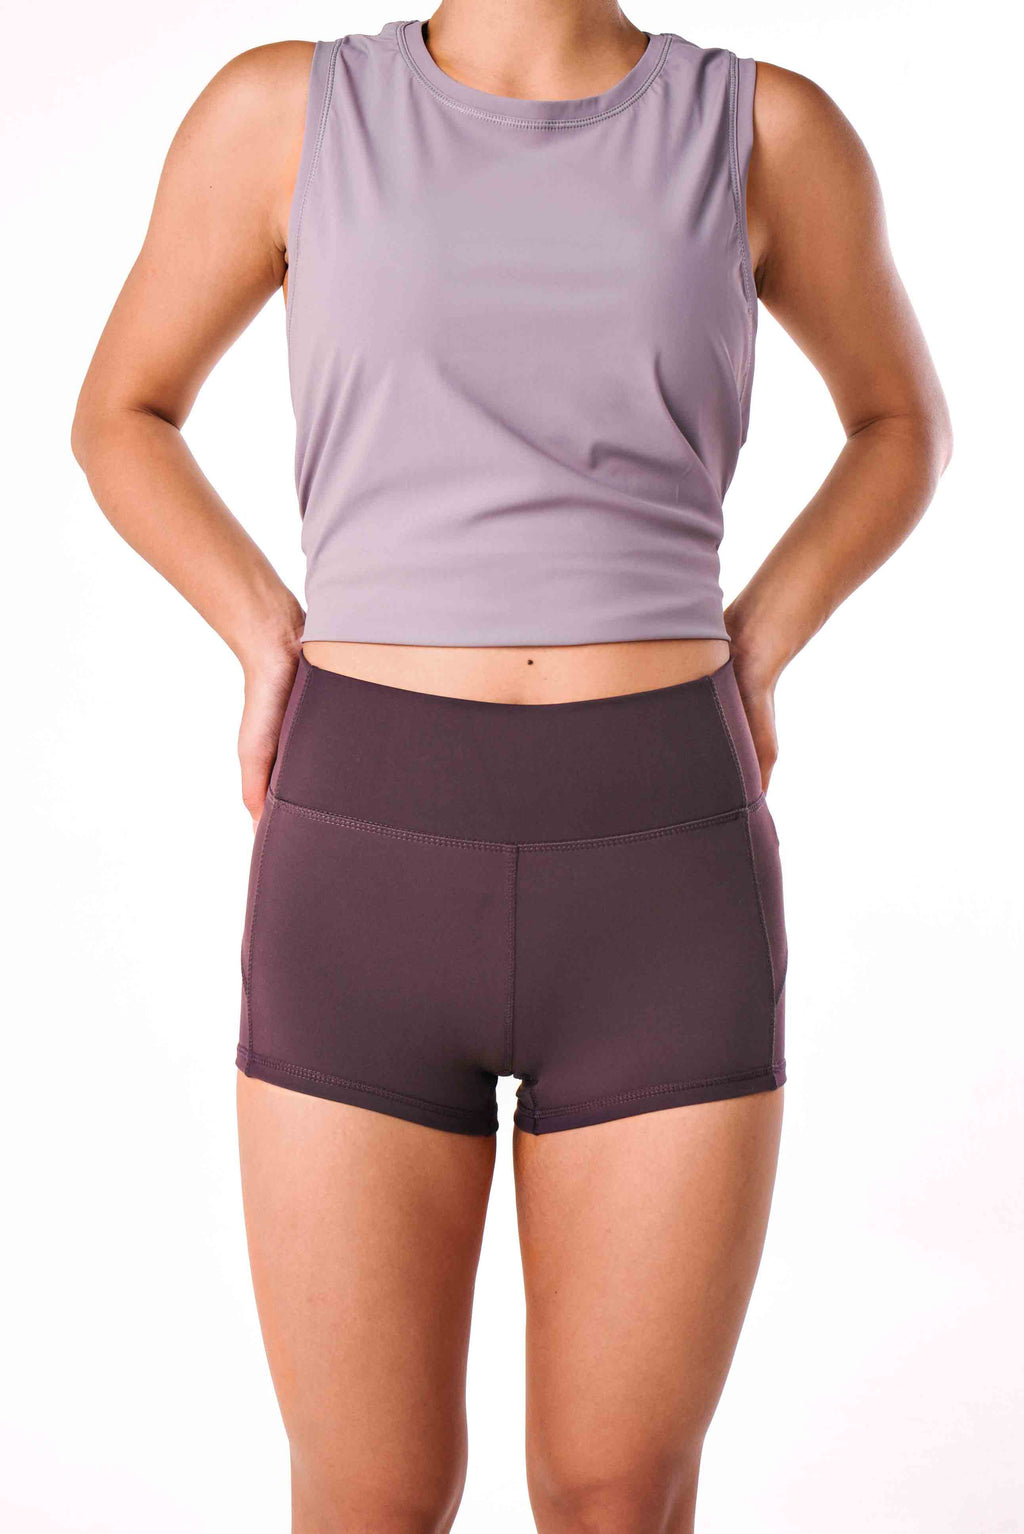 FLEX SHORTS - TWILIGHT MAUVE